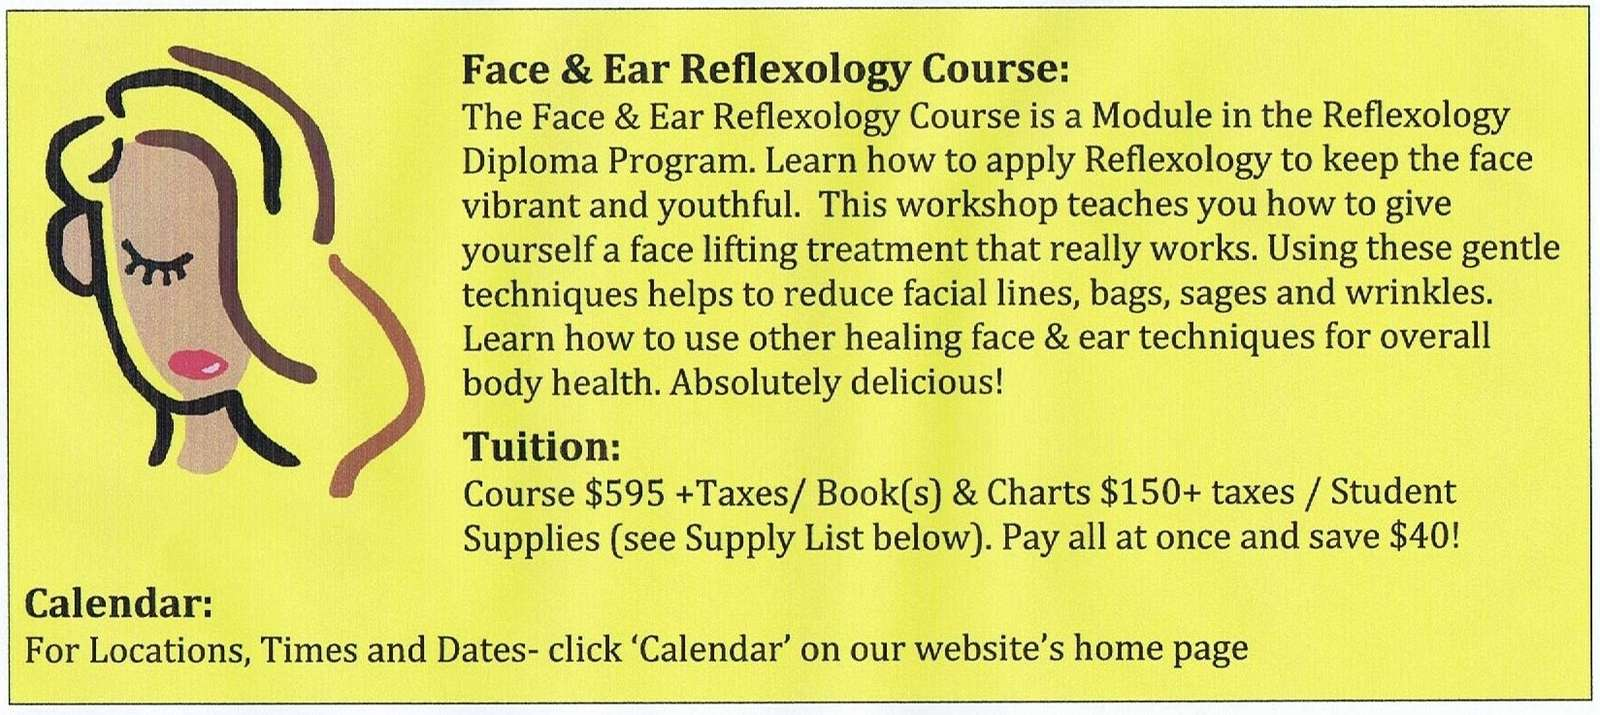 A poster with information about the Face and Ear Reflexology Program offered by Alberta massage school, Archways Healing College.